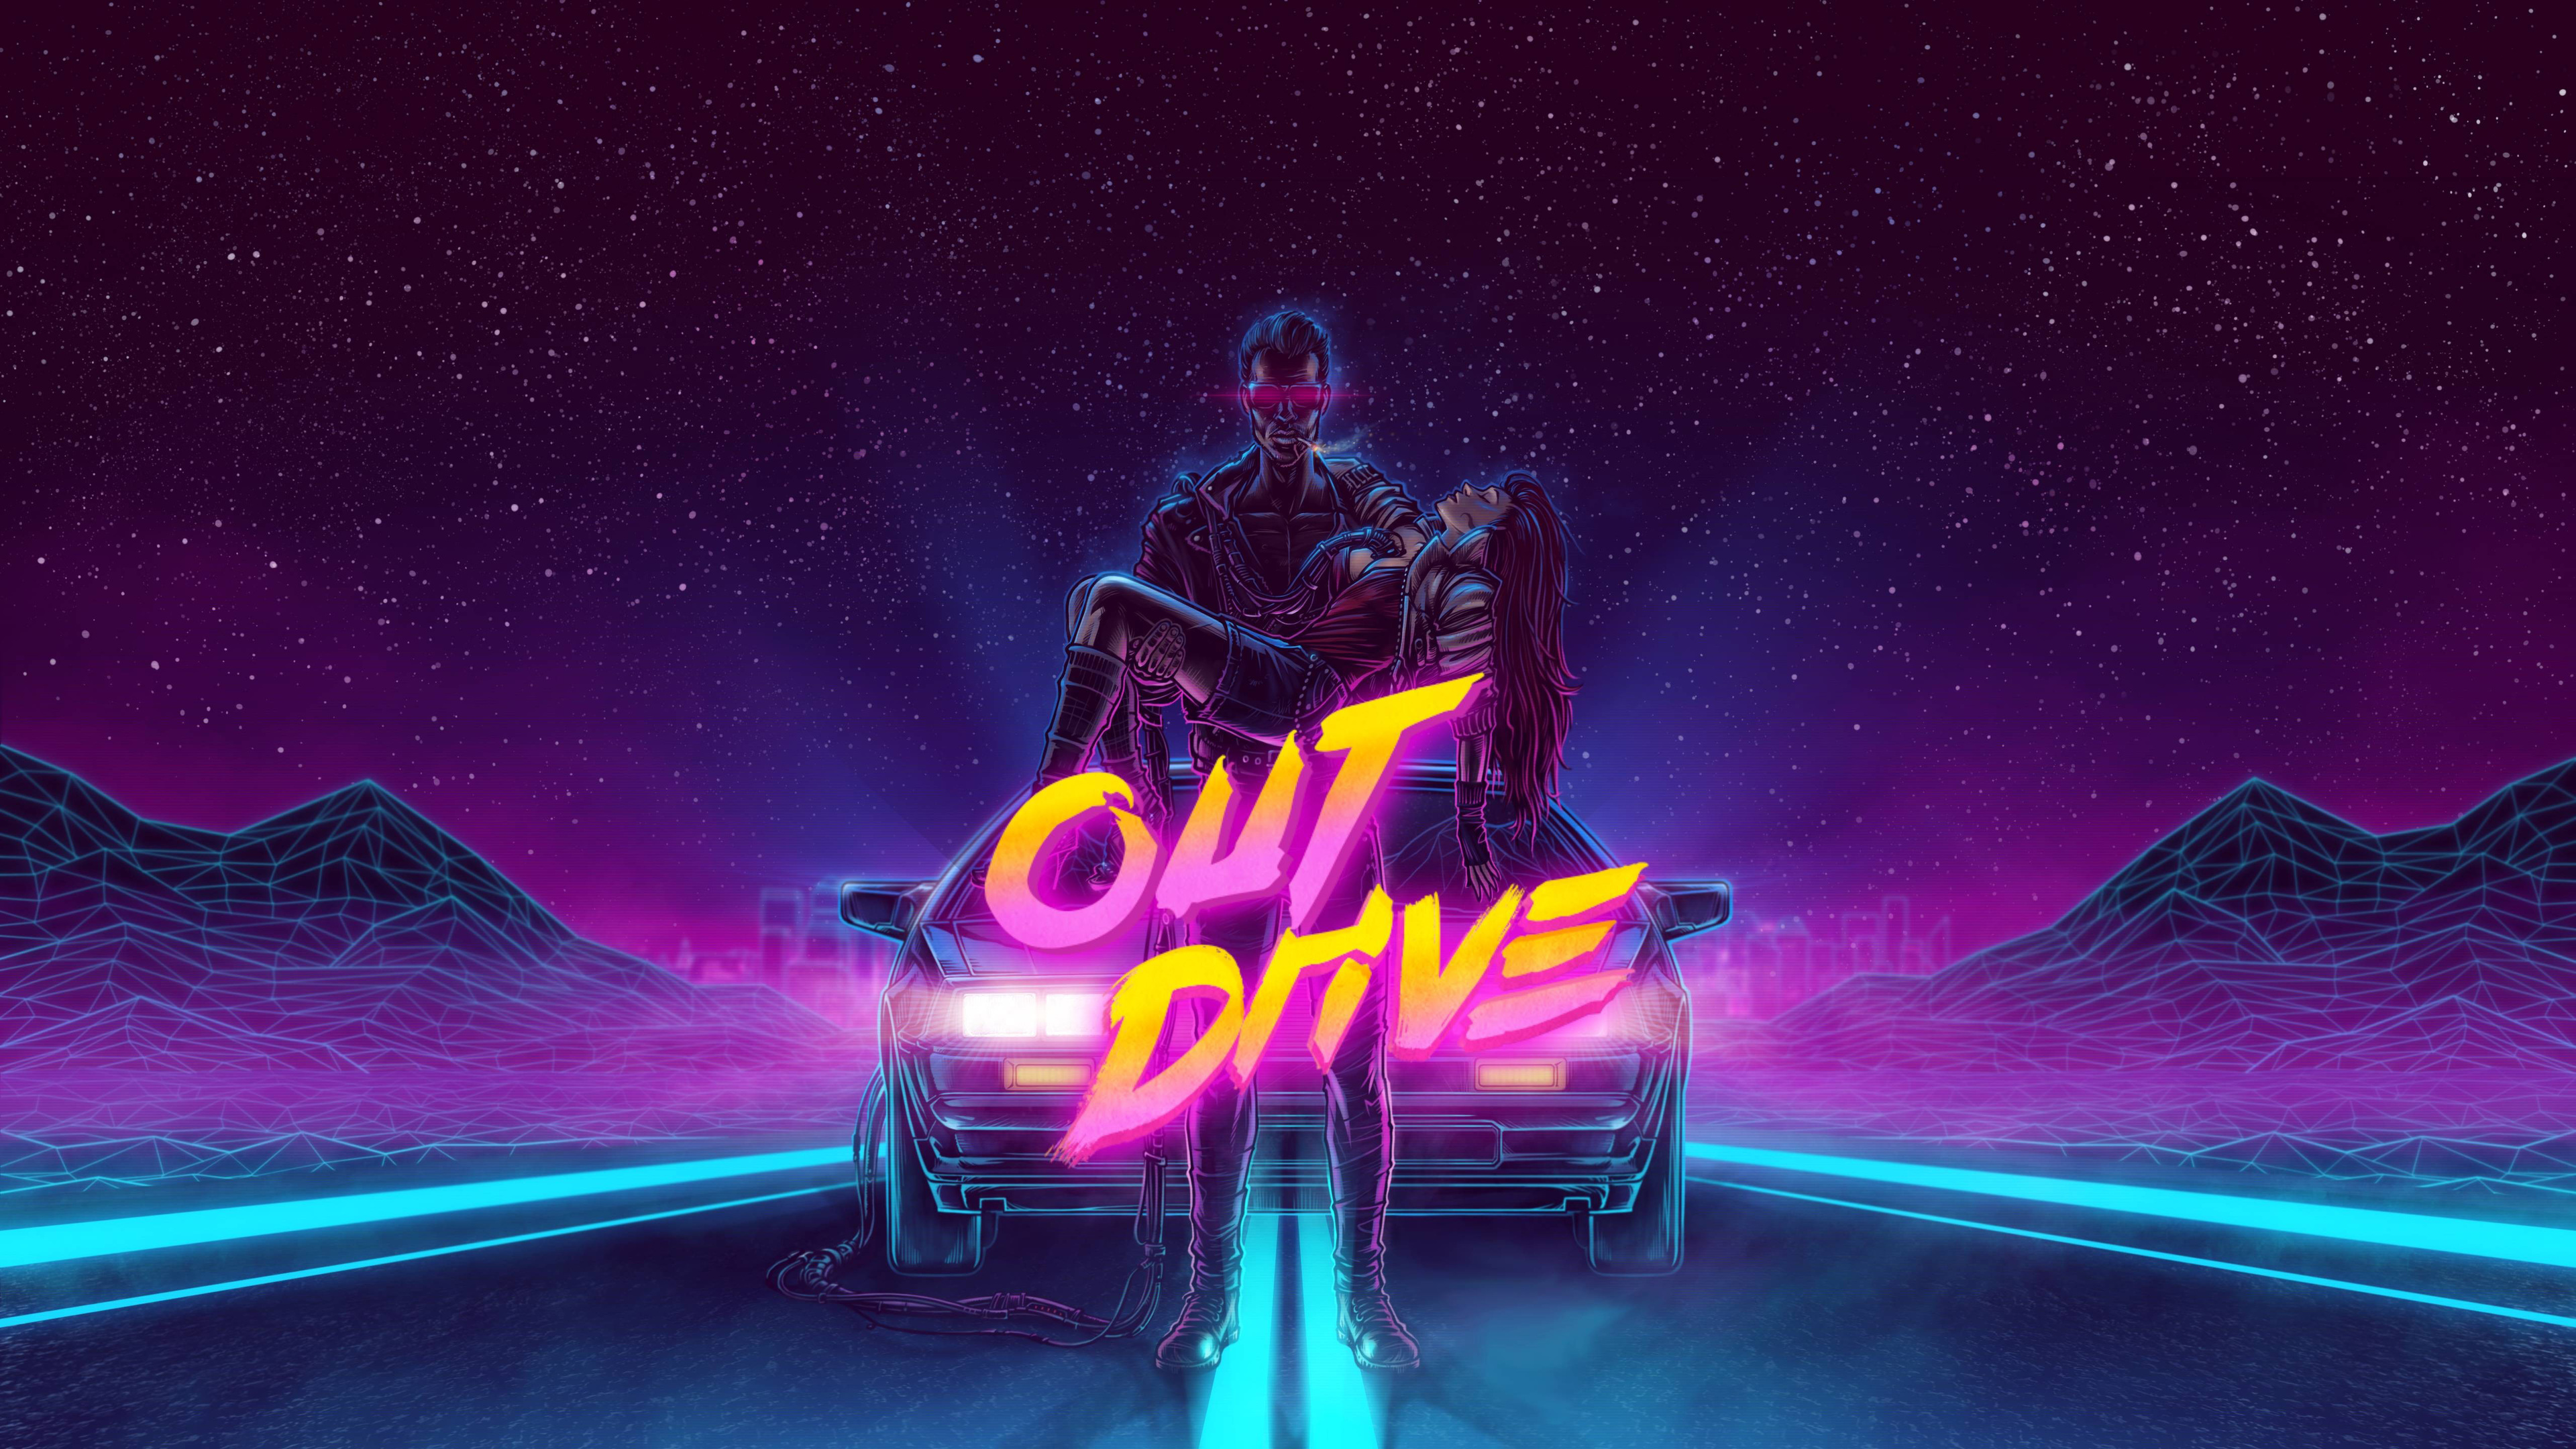 Wallpaper 4k Delorean 1980 Outrun Artwork 4k 4k Wallpapers Artist Wallpapers Artwork Wallpapers Digital Art Wallpapers Hd Wallpapers Retro Wallpapers